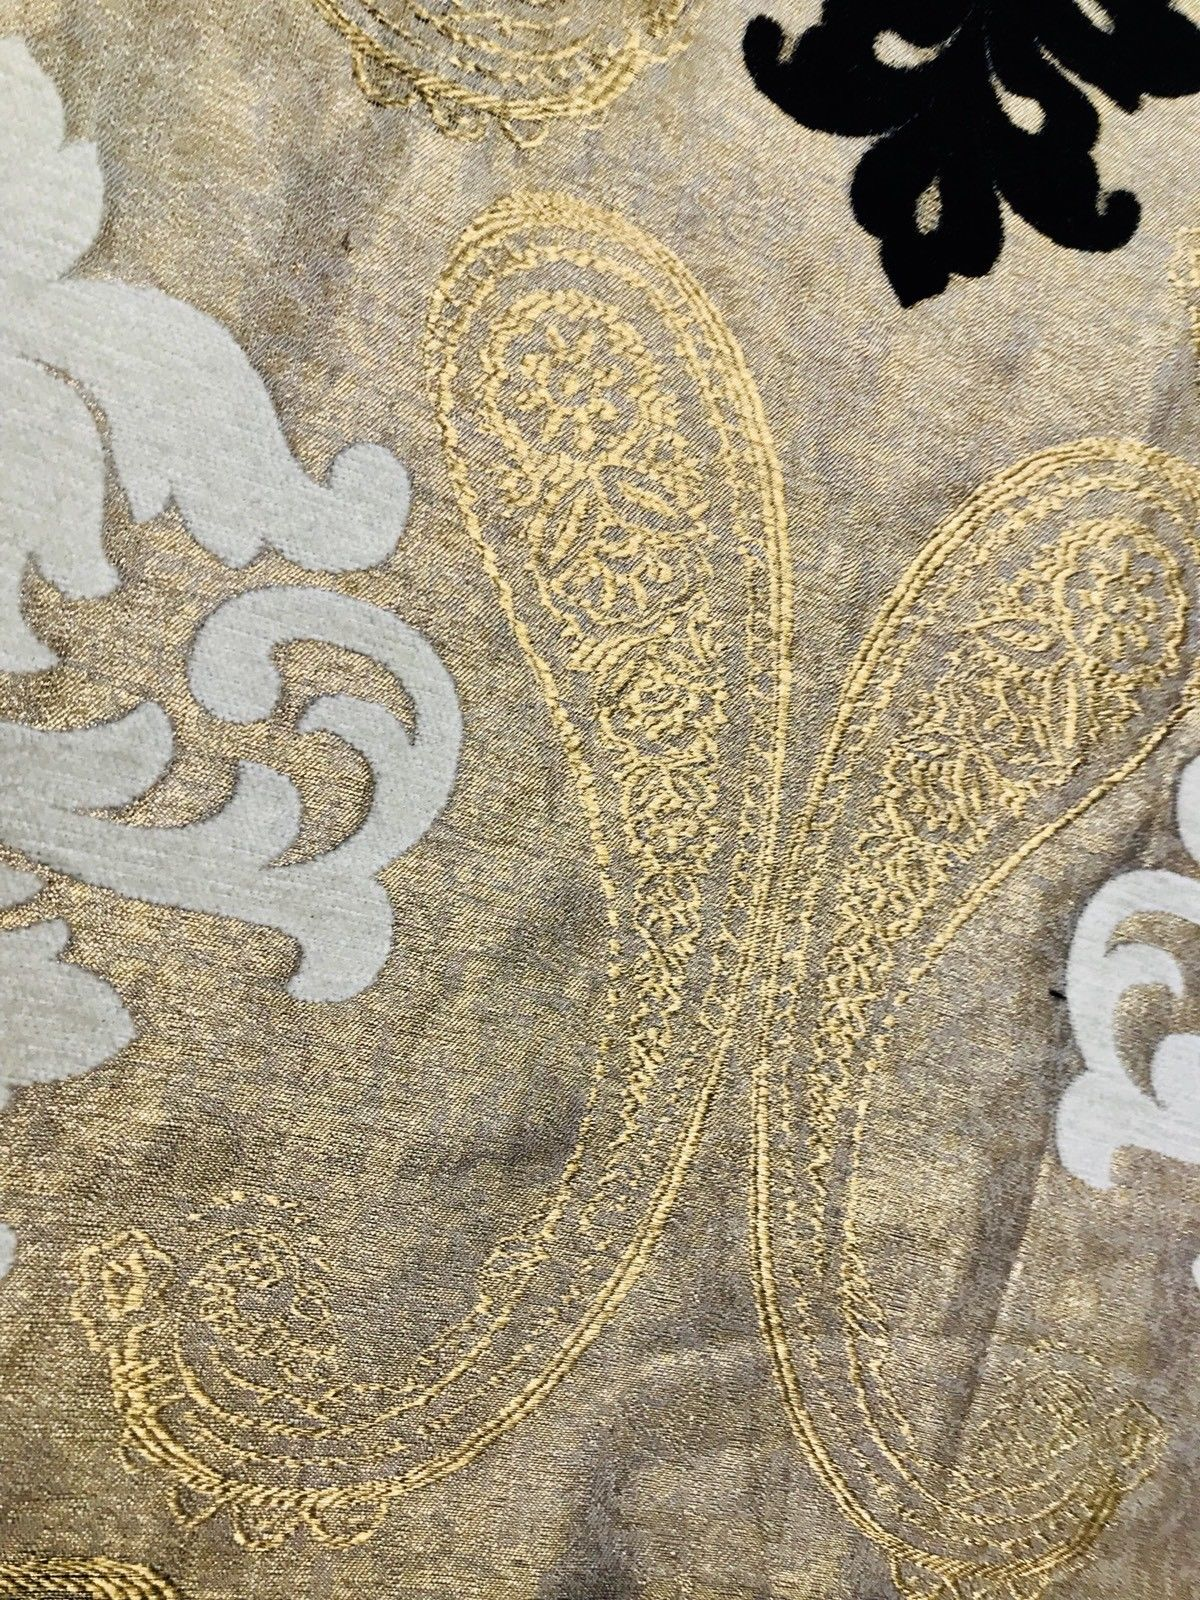 SWATCH Brocade Fabric- Antique Cream, Gold, Black- Damask Interior Design - Fancy Styles Fabric Boutique